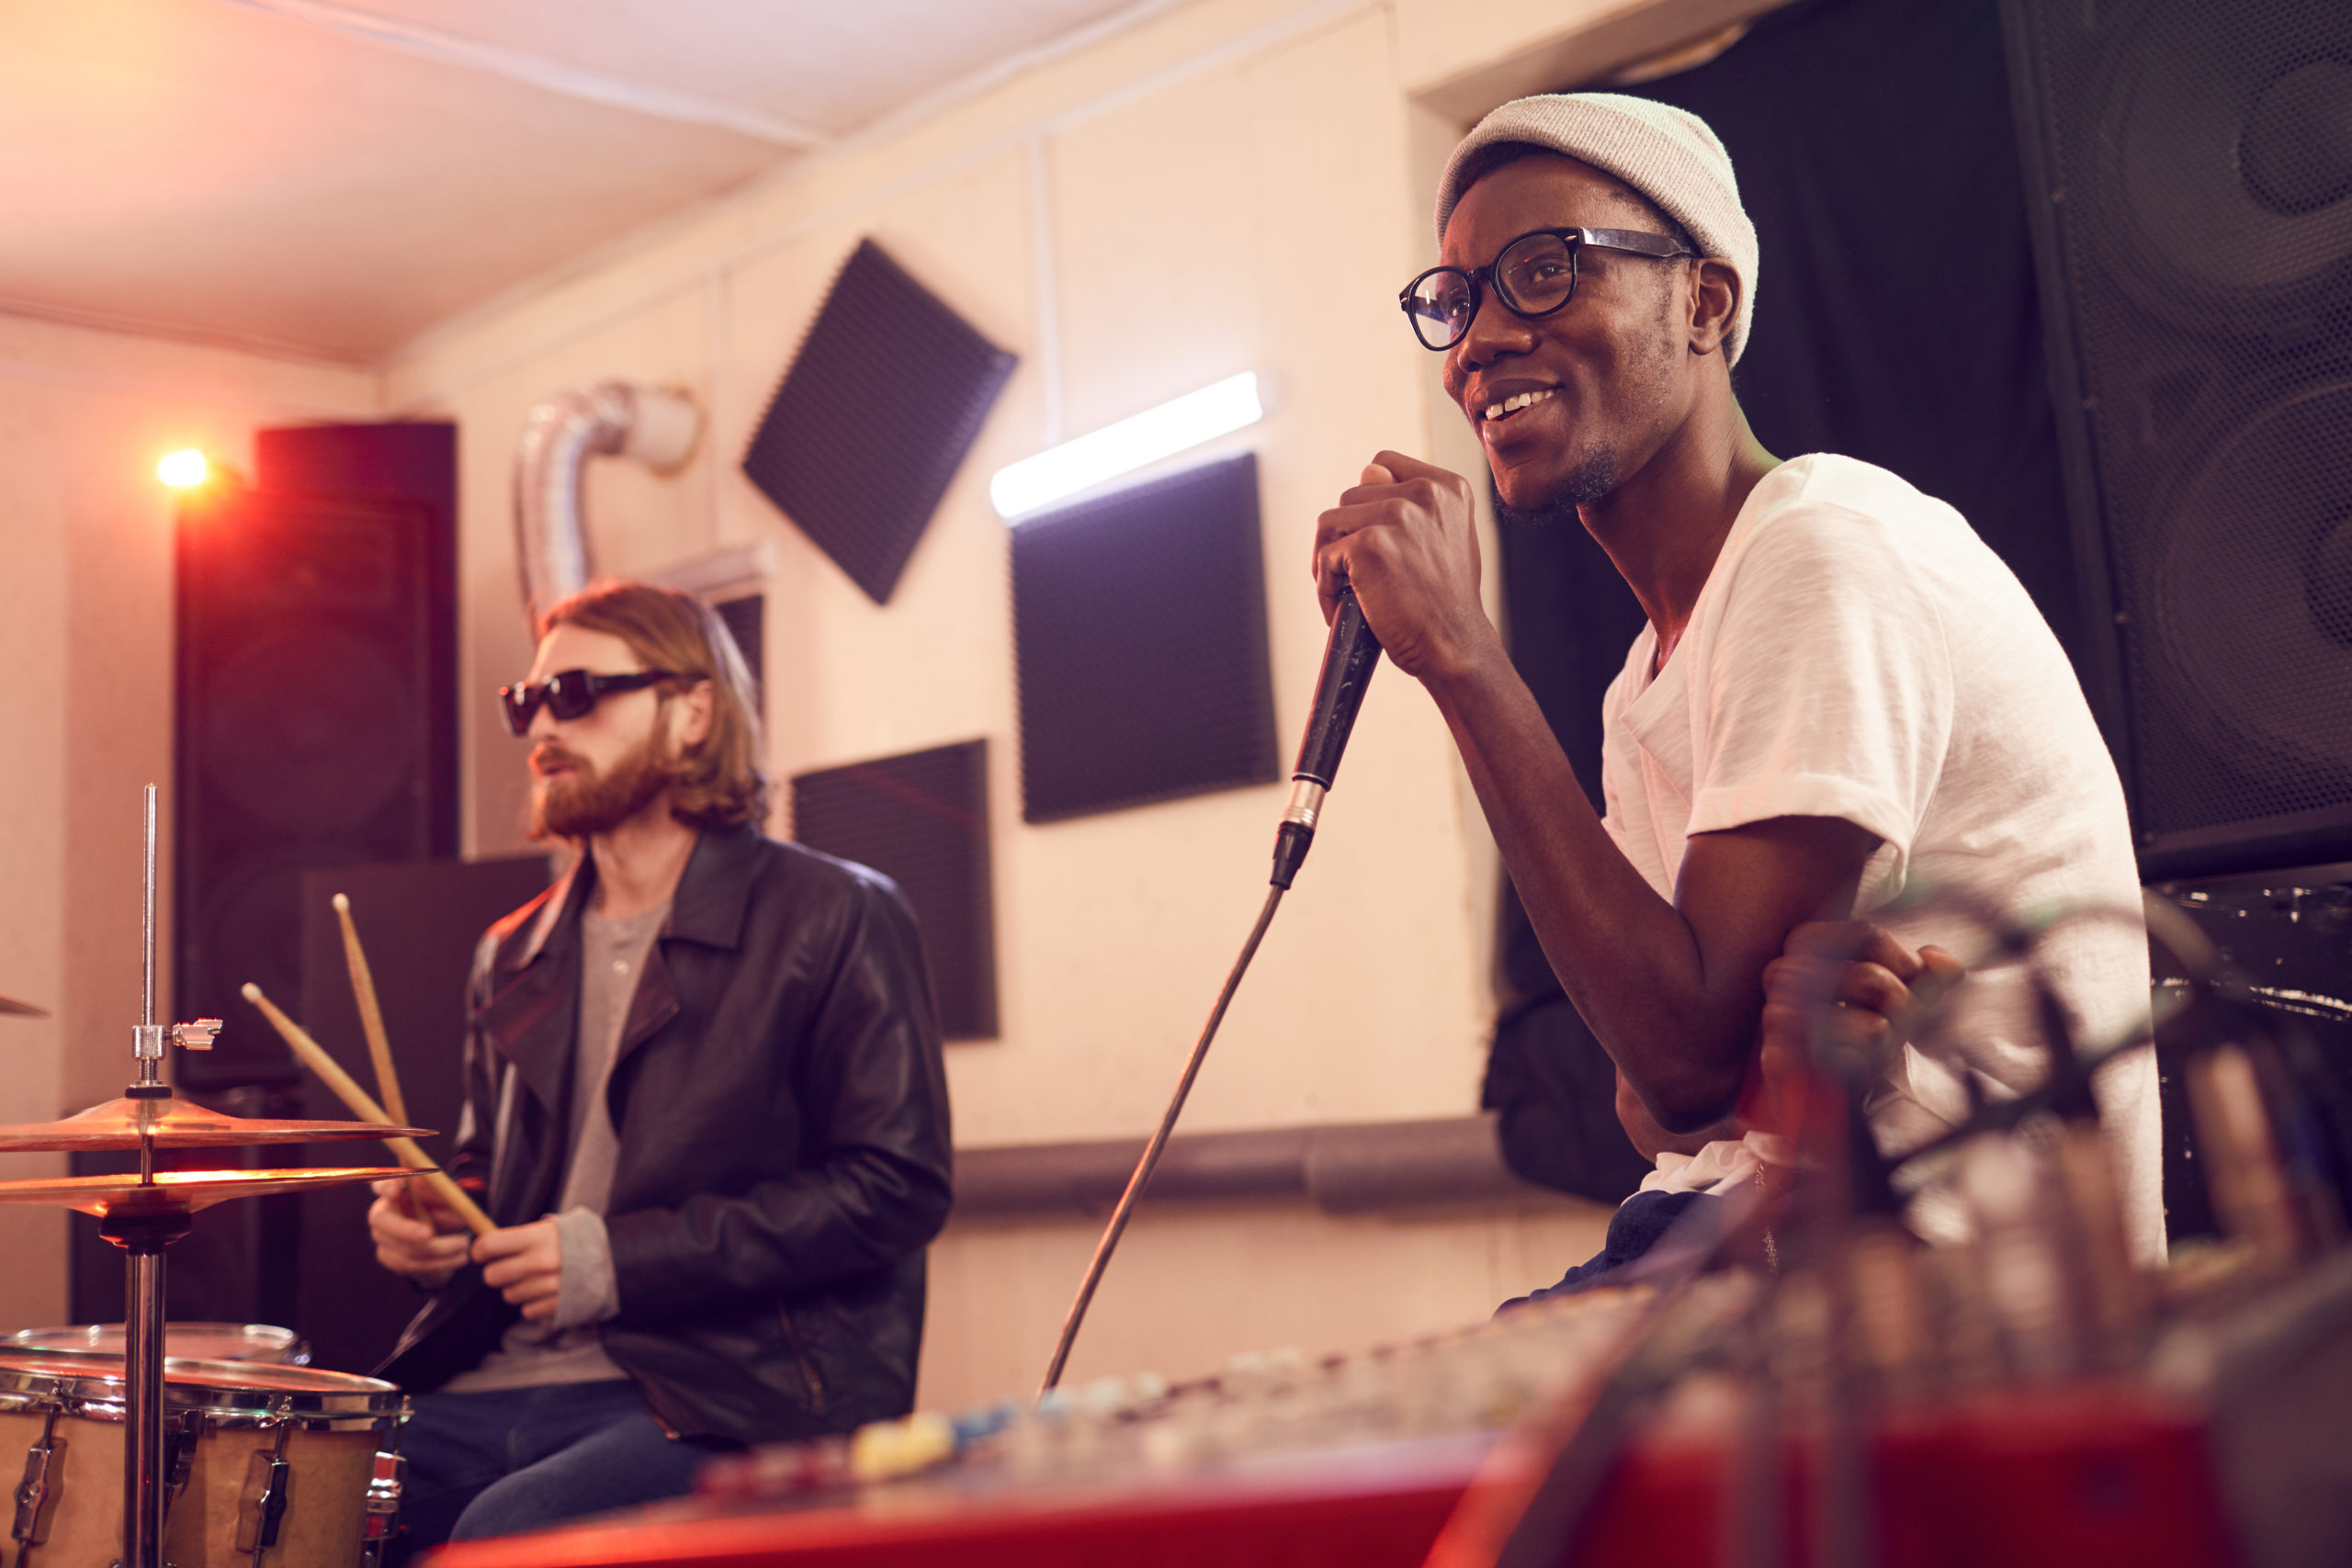 Portrait of contemporary African-American man singing to microphone and smiling happily during rehearsal or concert in music studio, copy space